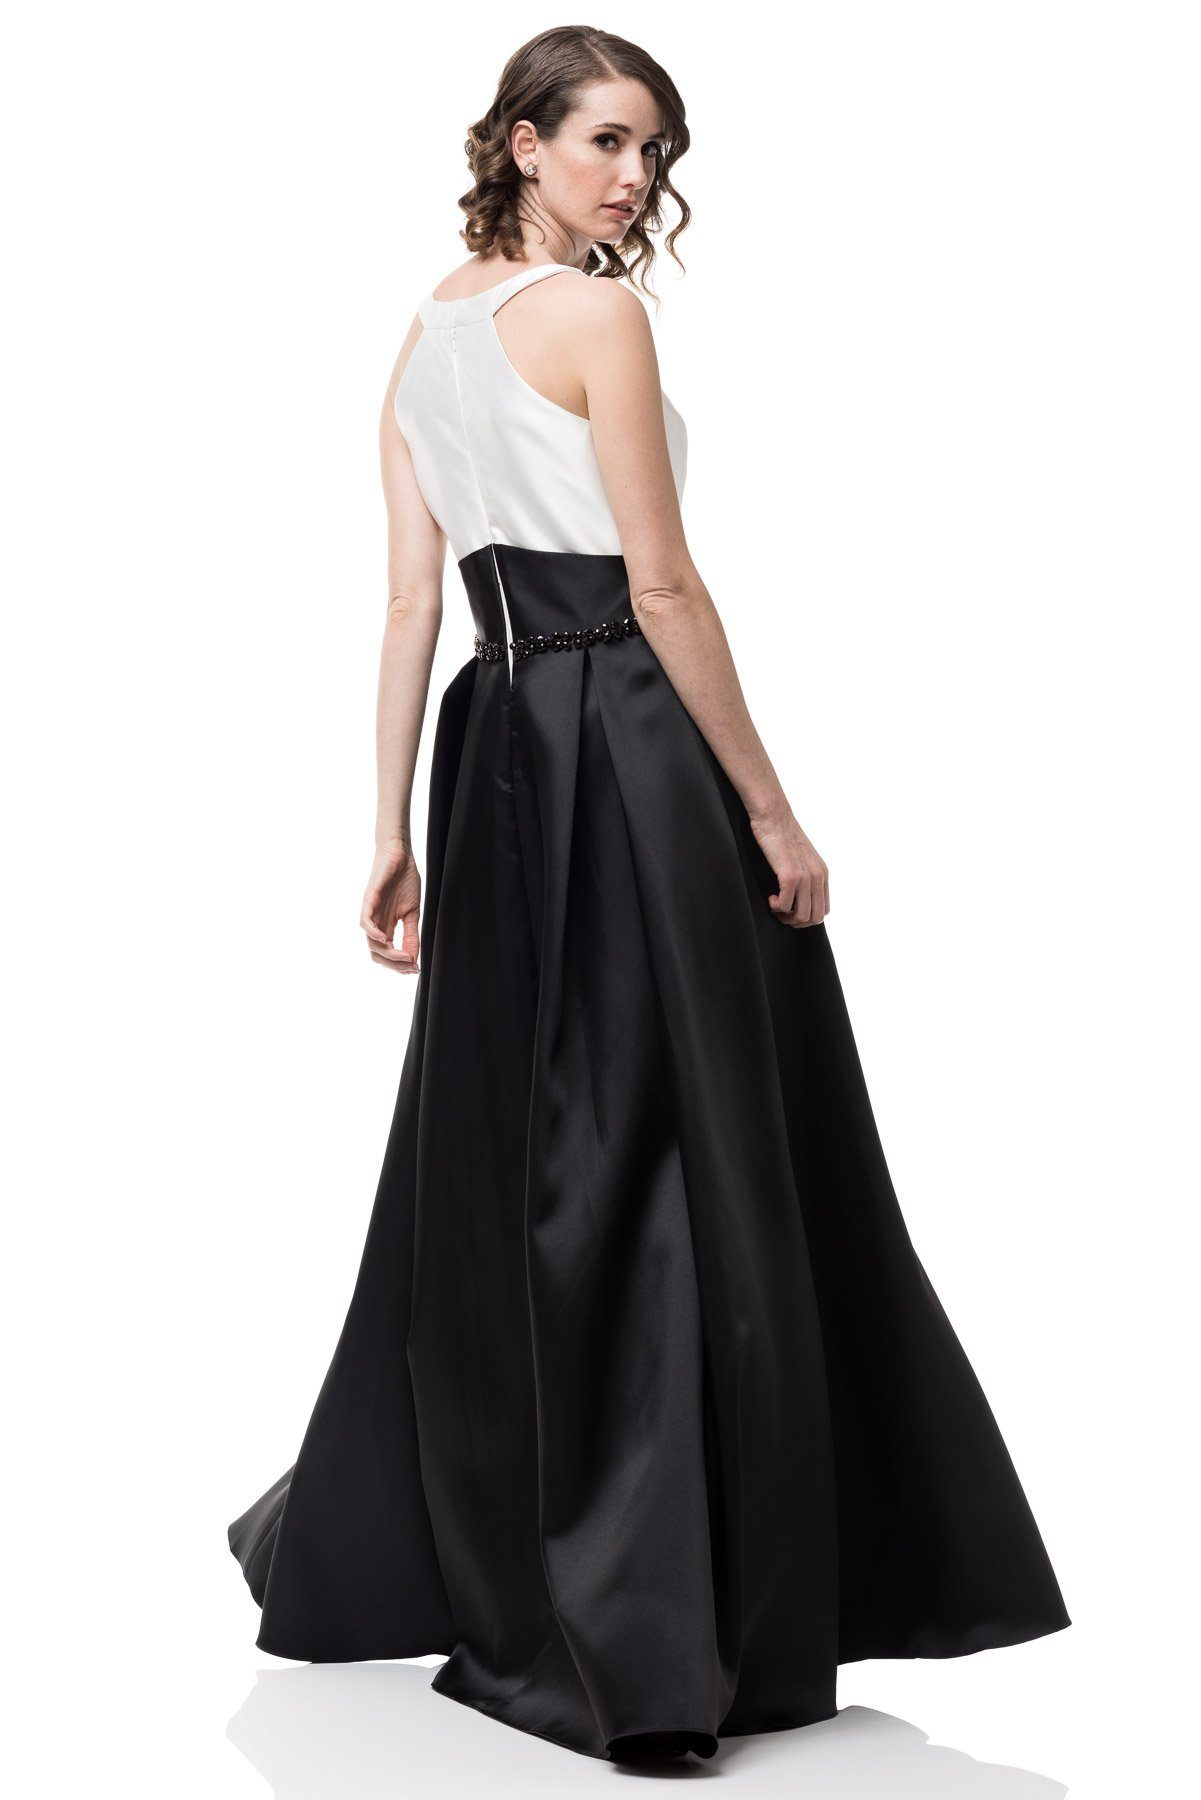 Black and white formal dress #CC71108-Simply Fab Dress